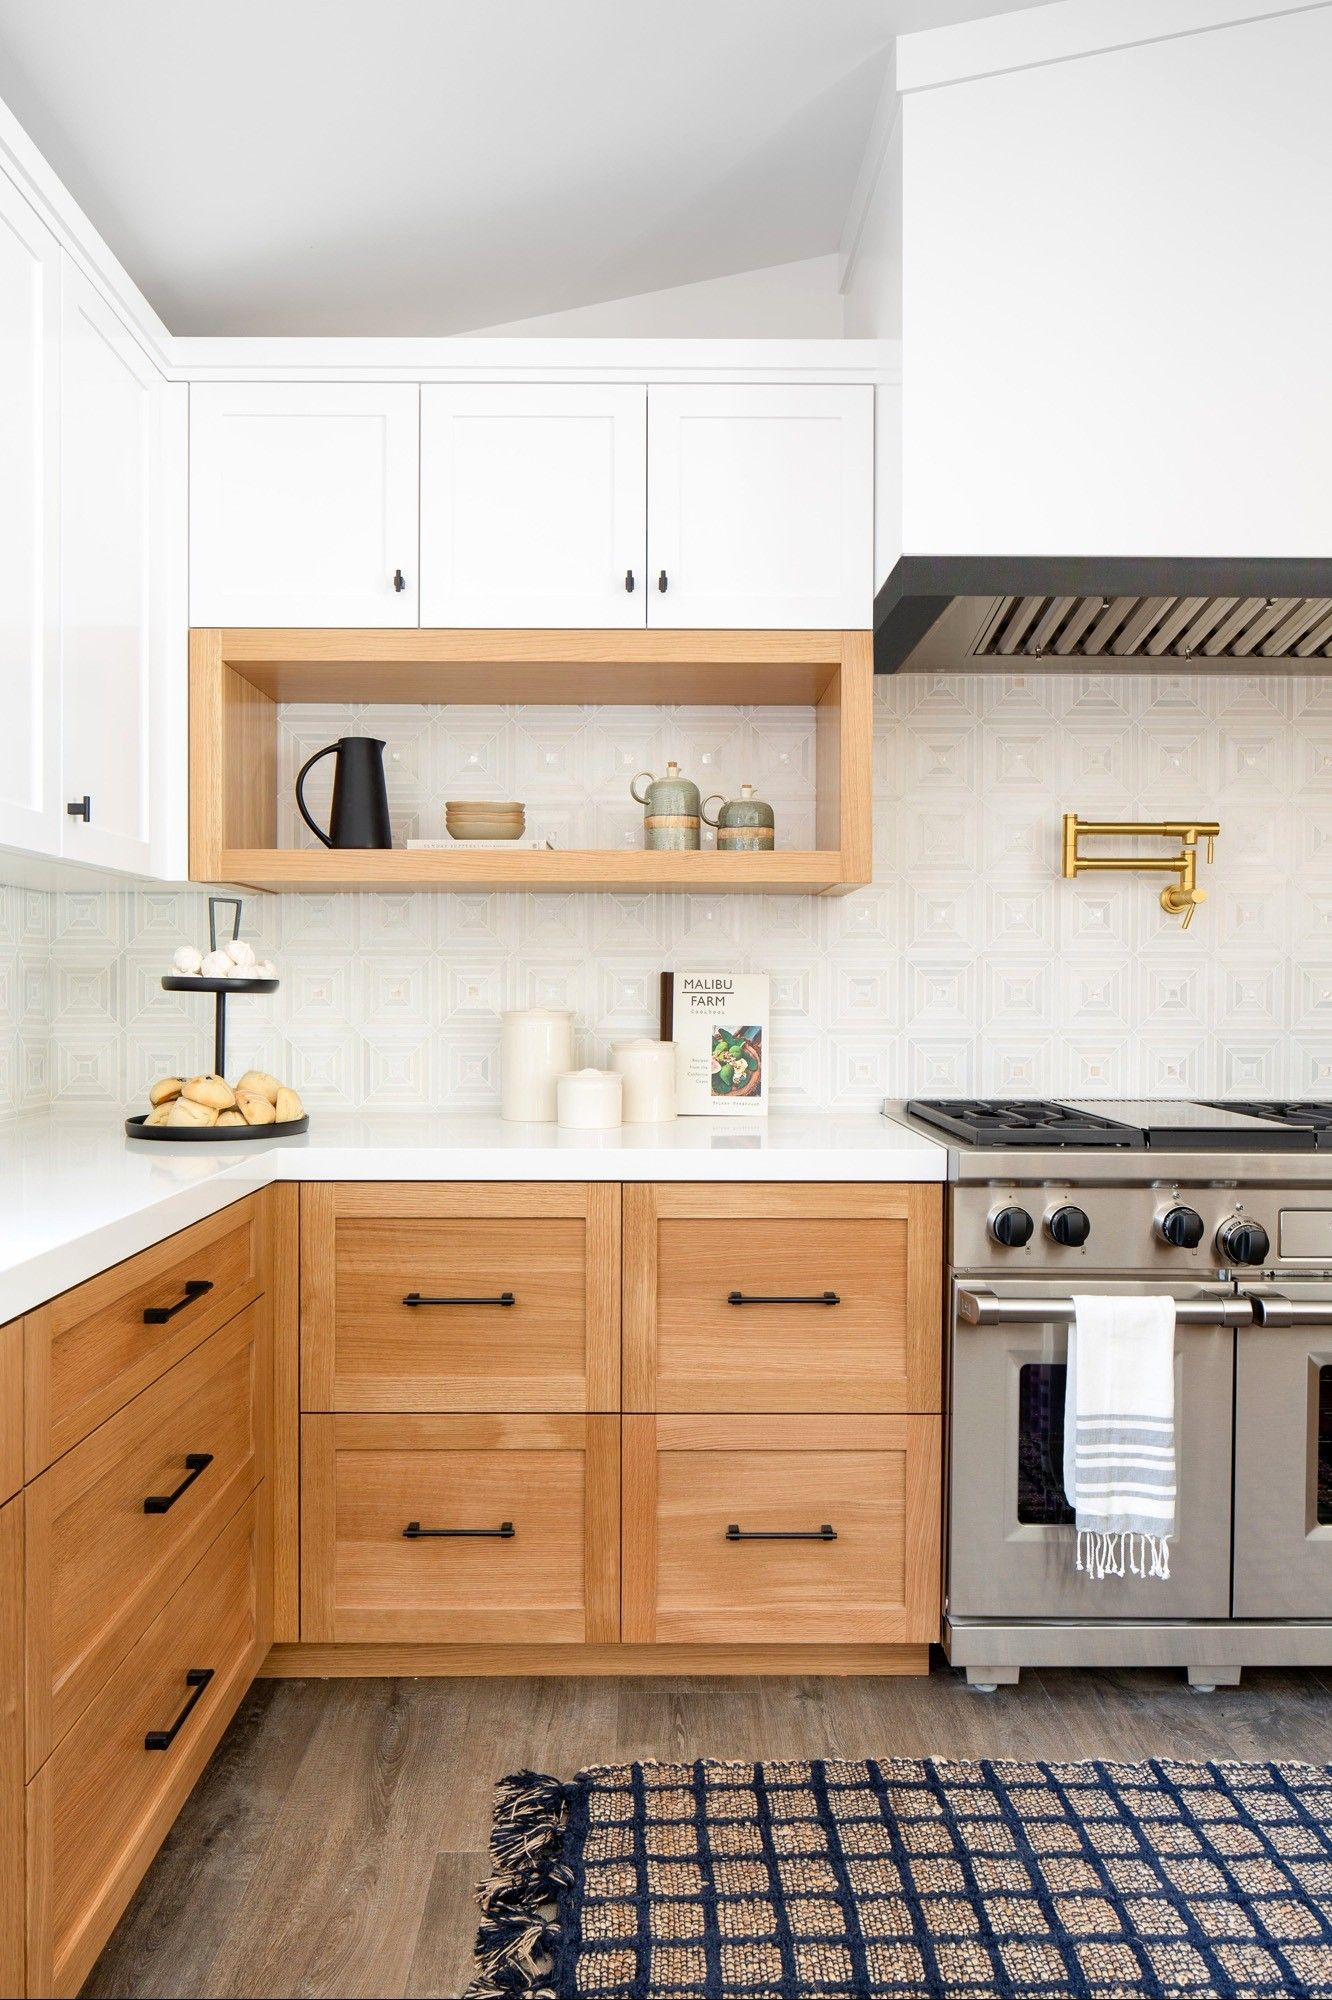 Pin by Heather Nguyen on Home 202 in 2020 | Maple kitchen ... on Maple Kitchen Cabinets With Black Countertops  id=70924